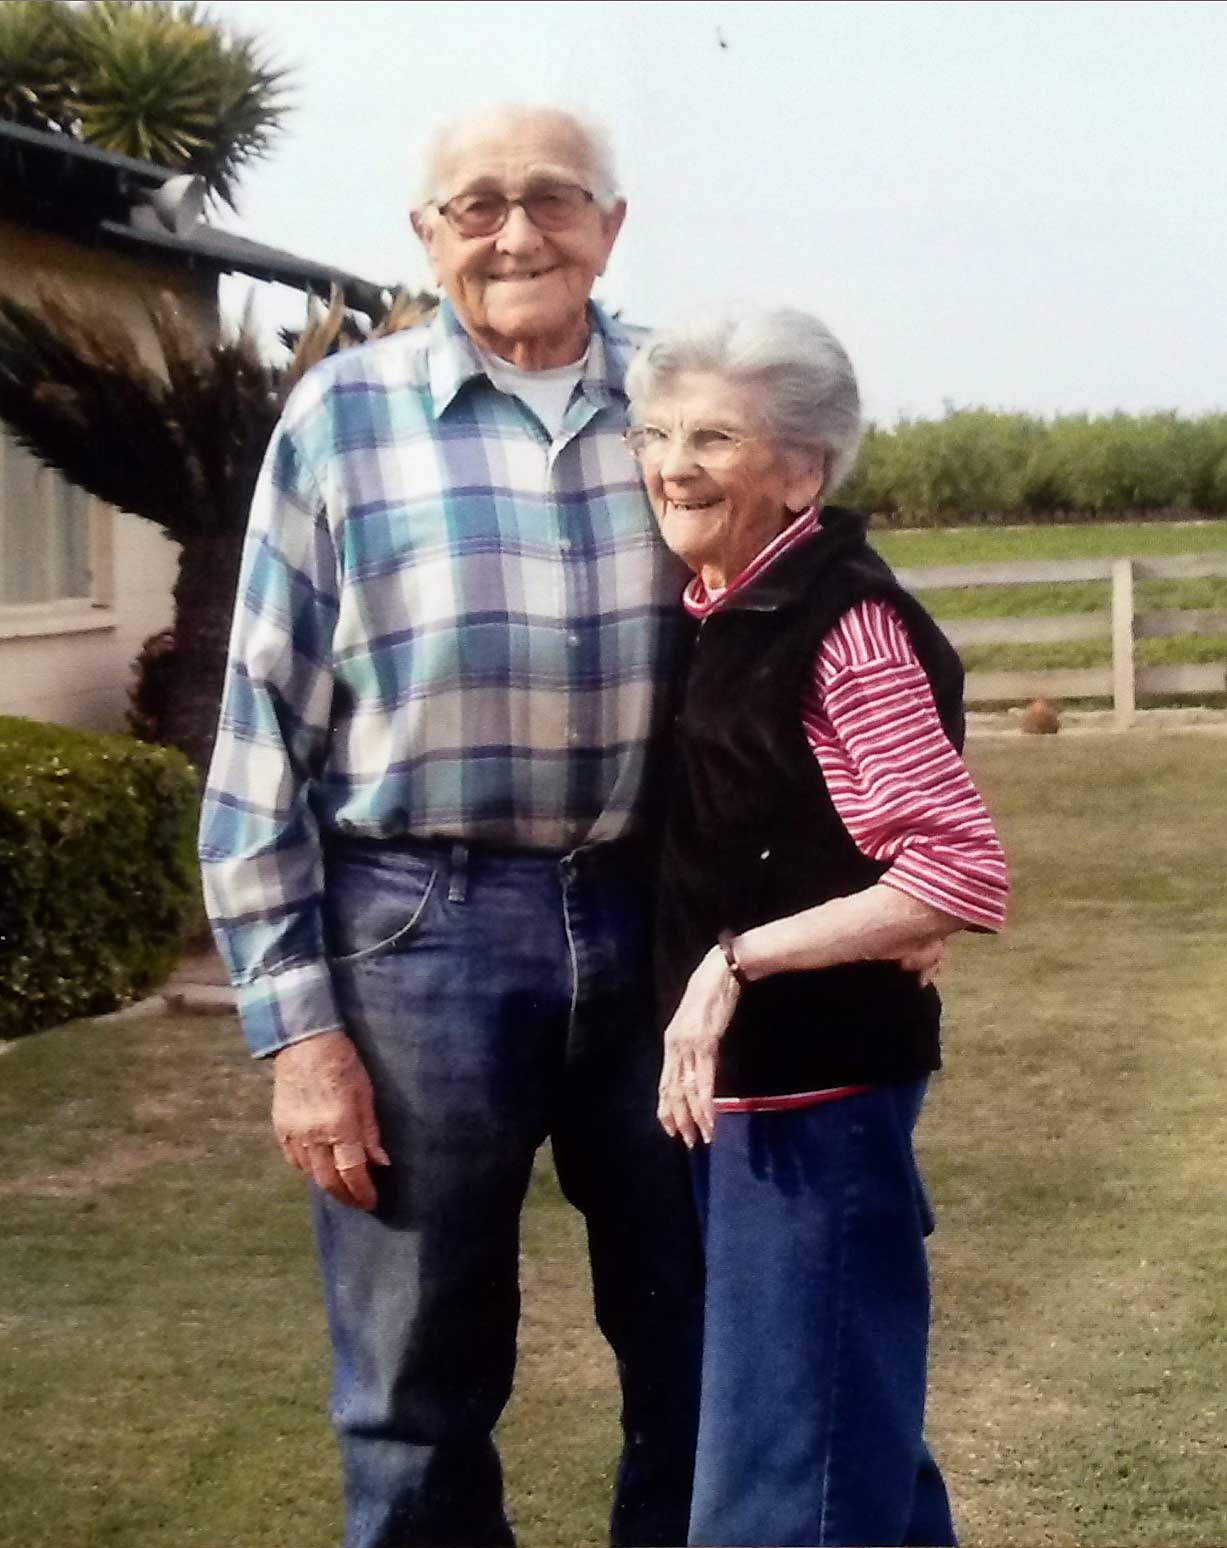 In this March 2014 photo provided by Cynthia Letson, Floyd and Violet Hartwig pose together in a yard in Easton, Calif.